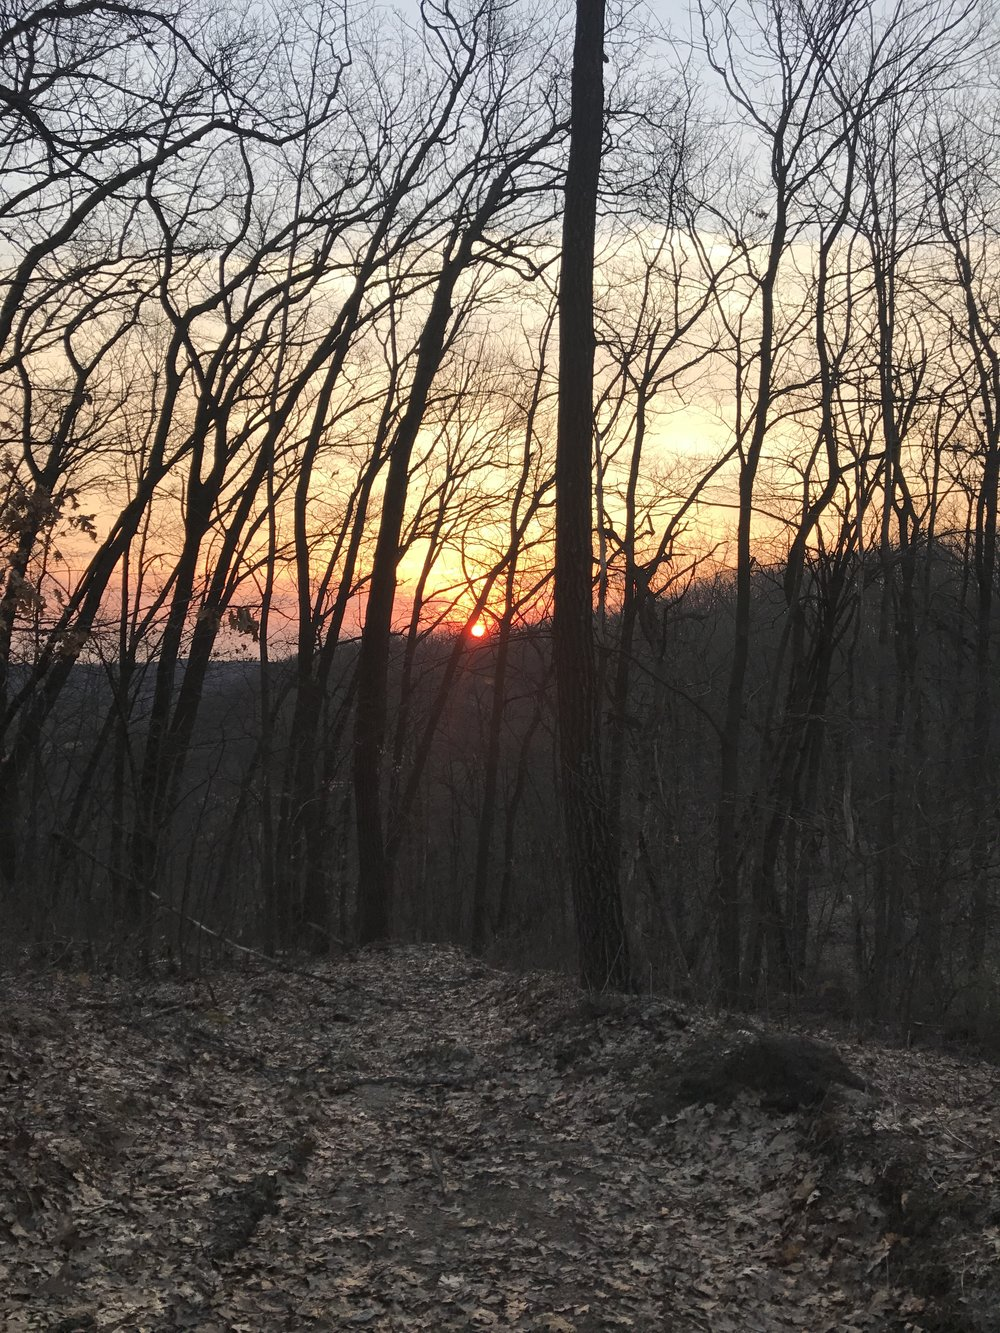 Sunrise from the trail.